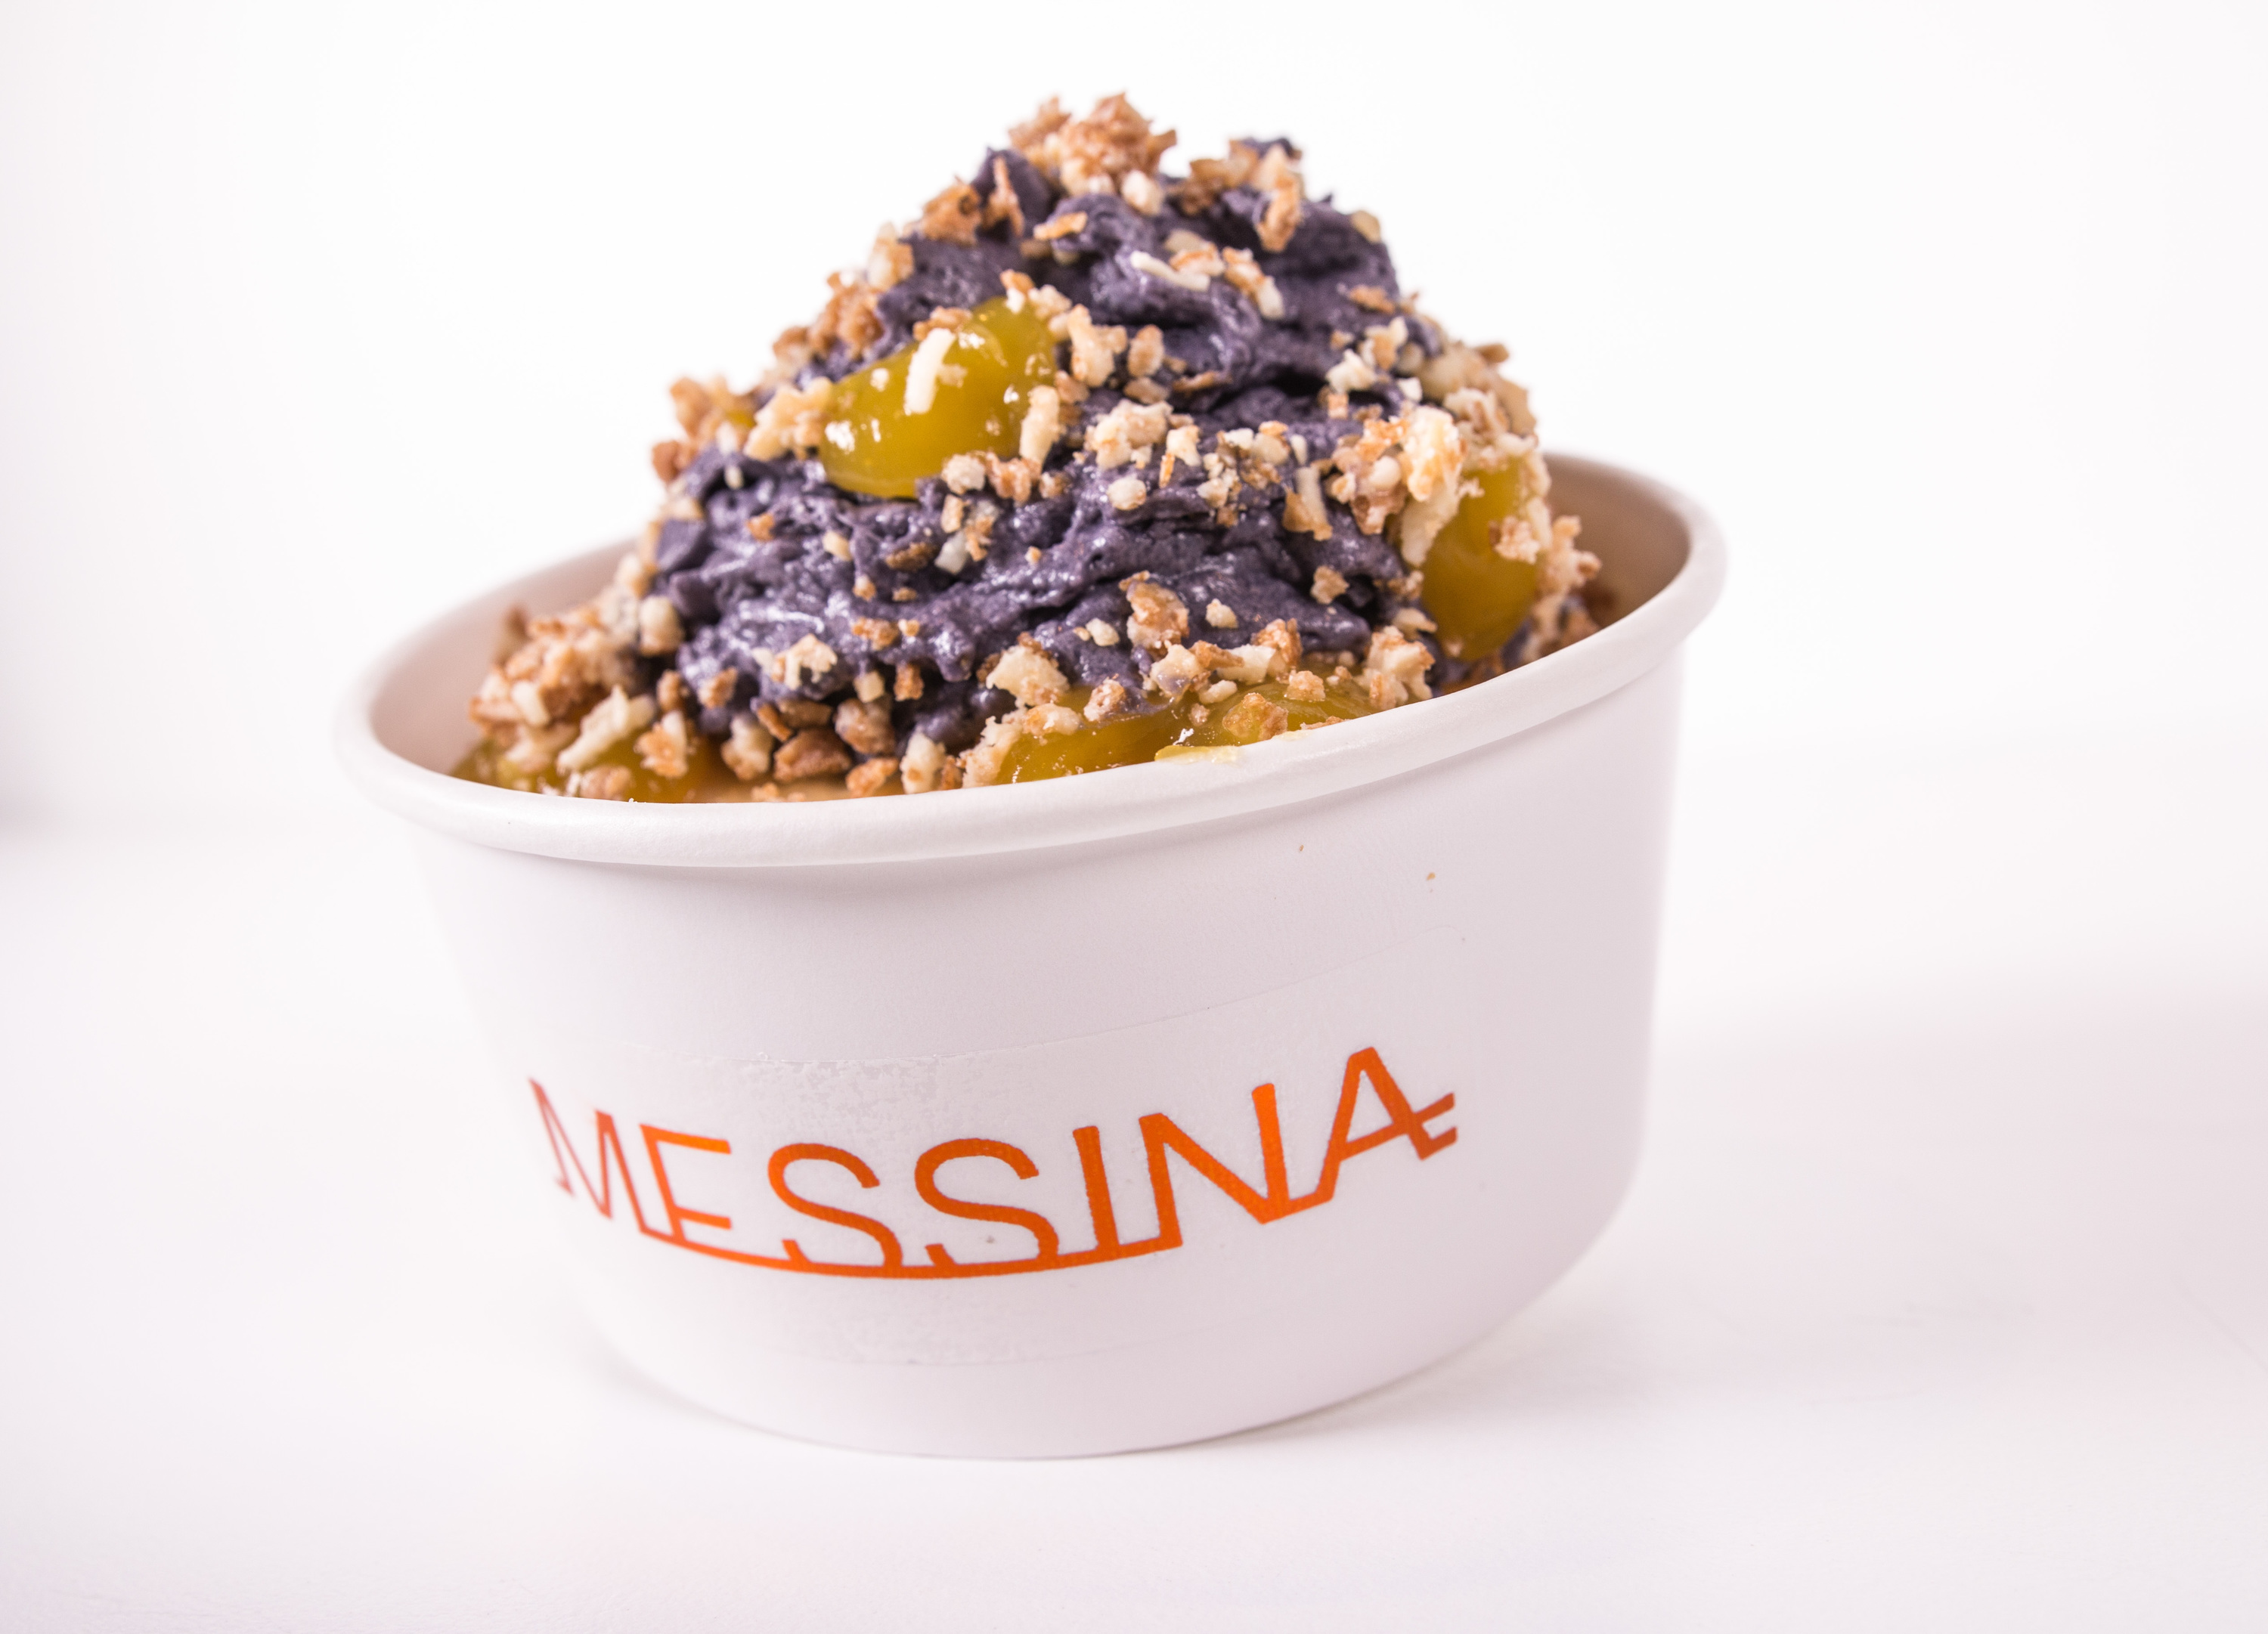 Messina Turron Not ice cream